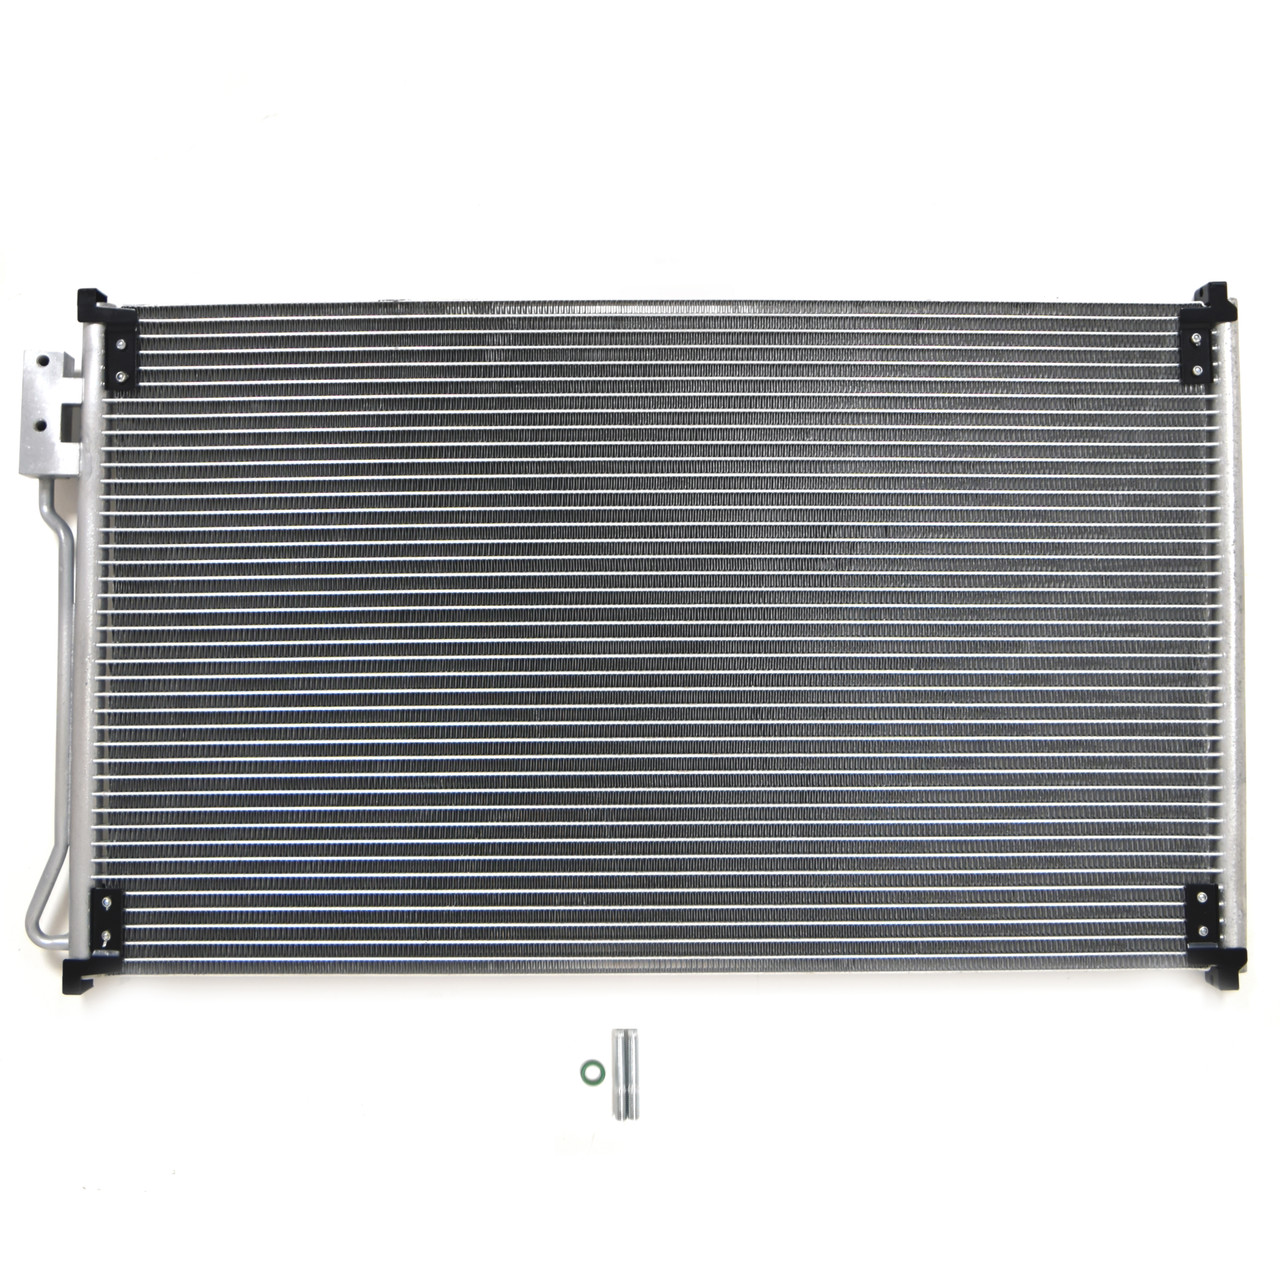 eClassics 1998-2004 Ford Mustang A/C Air Conditioning Condenser